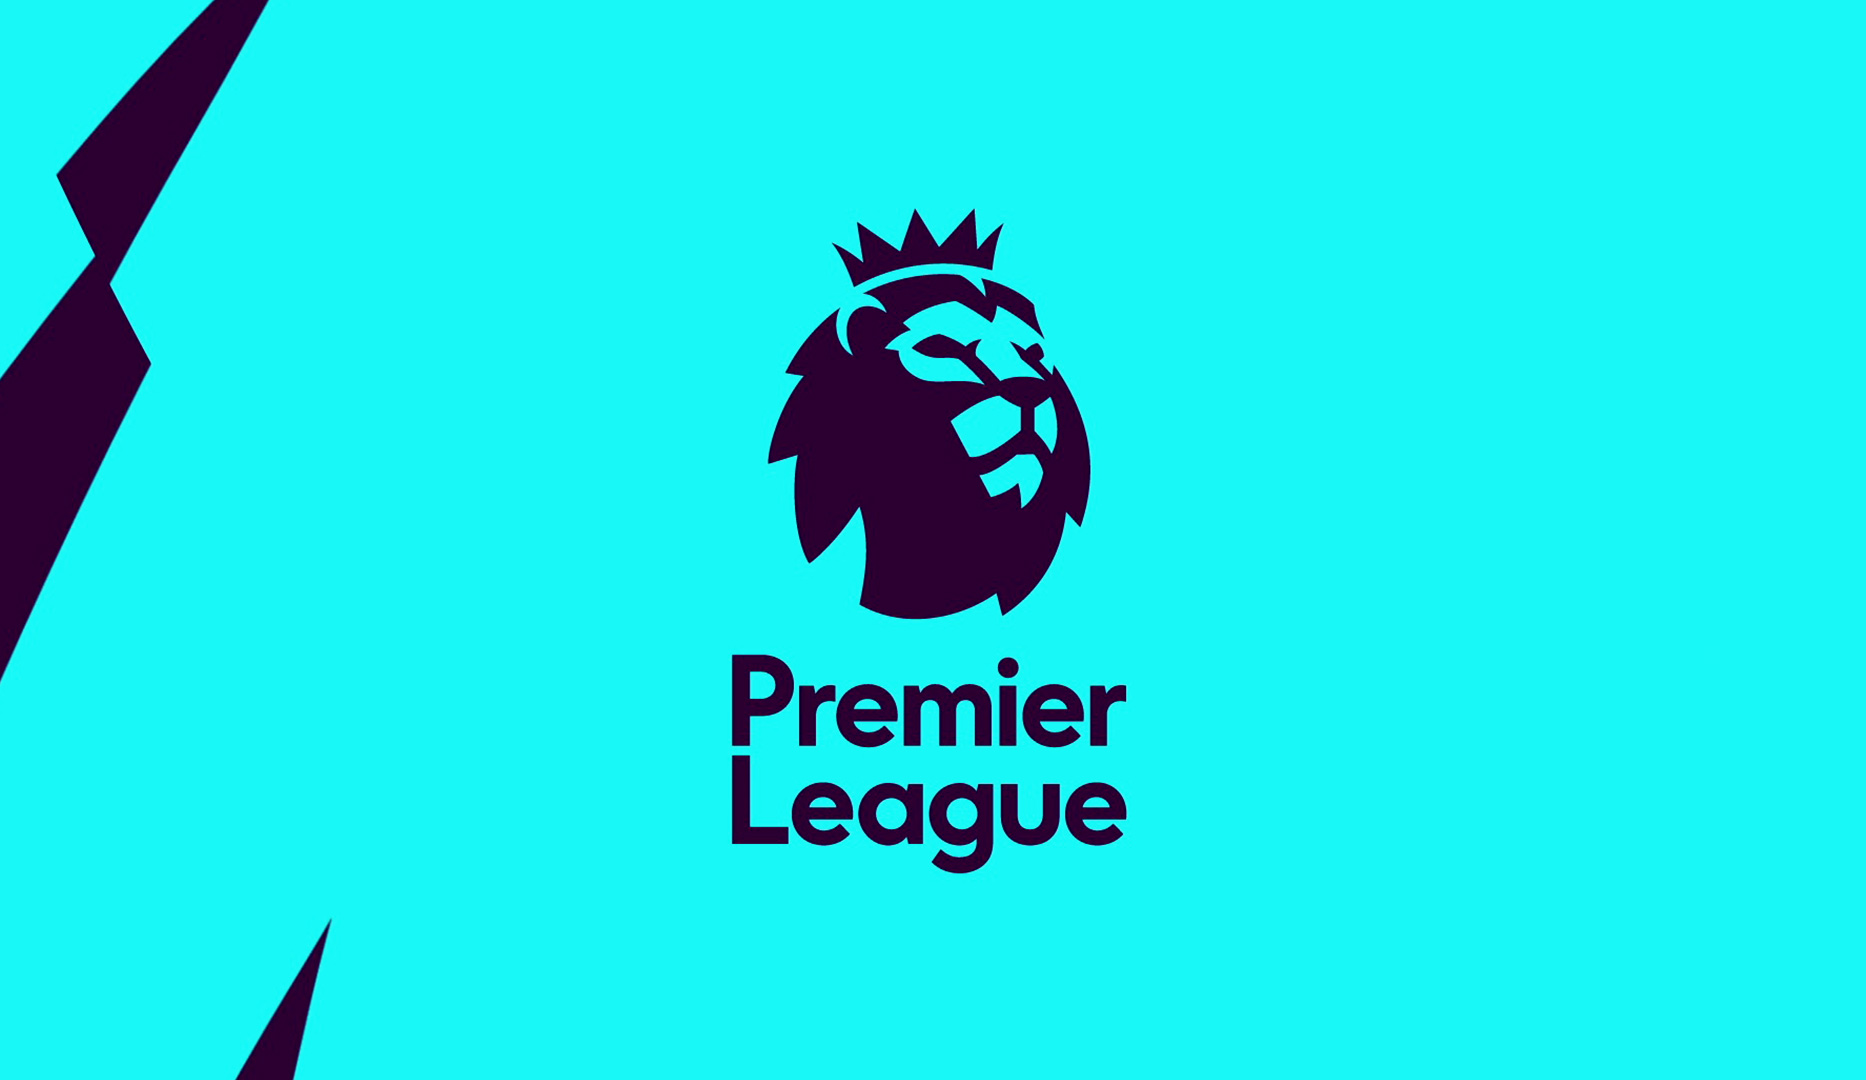 Premier League Thumnail2